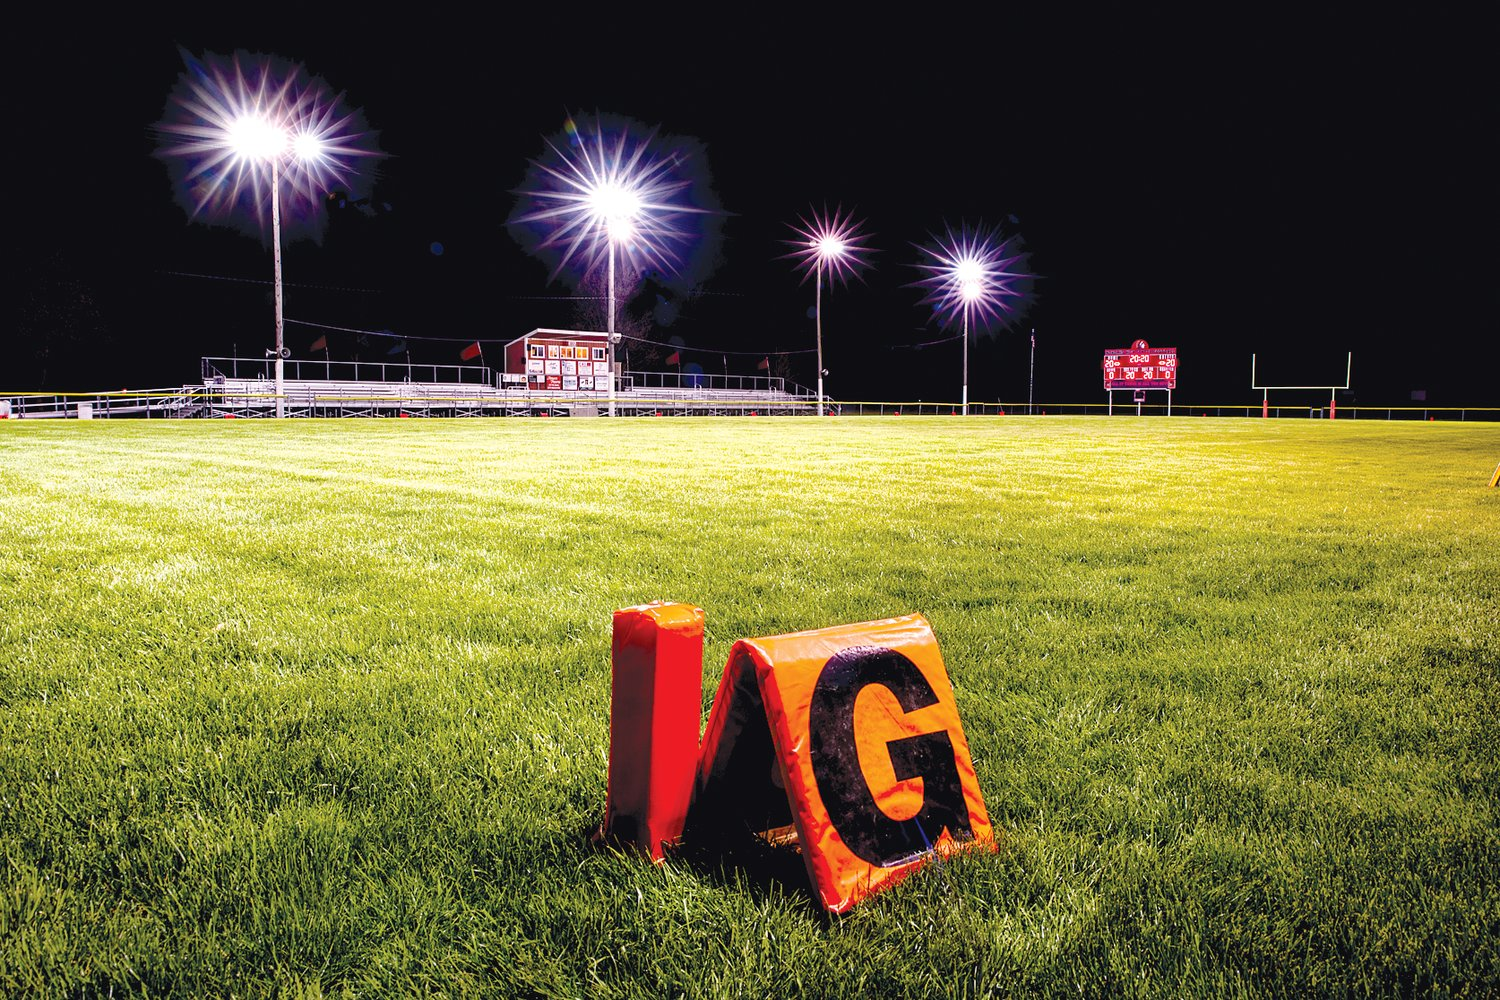 The lights were on at football fields and other sports fields across Montgomery County and the state on Friday night, but not for the usual reason. Schools throughout Illinois turned on the lights at their playing fields as a part of Lights For The Fight, a show of support for the Class of 2020, who had their senior year cut short on Friday by order of Governor J.B. Pritzker. The lights glowed from 8:20 (20:20 military time) to 8:40 at Nokomis (above), Litchfield, Lincolnwood and Hillsboro on Friday, with the project also a way for those communities to show support for healthcare workers, first responders and all other essential workers on the frontlines of the COVID-19 pandemic.